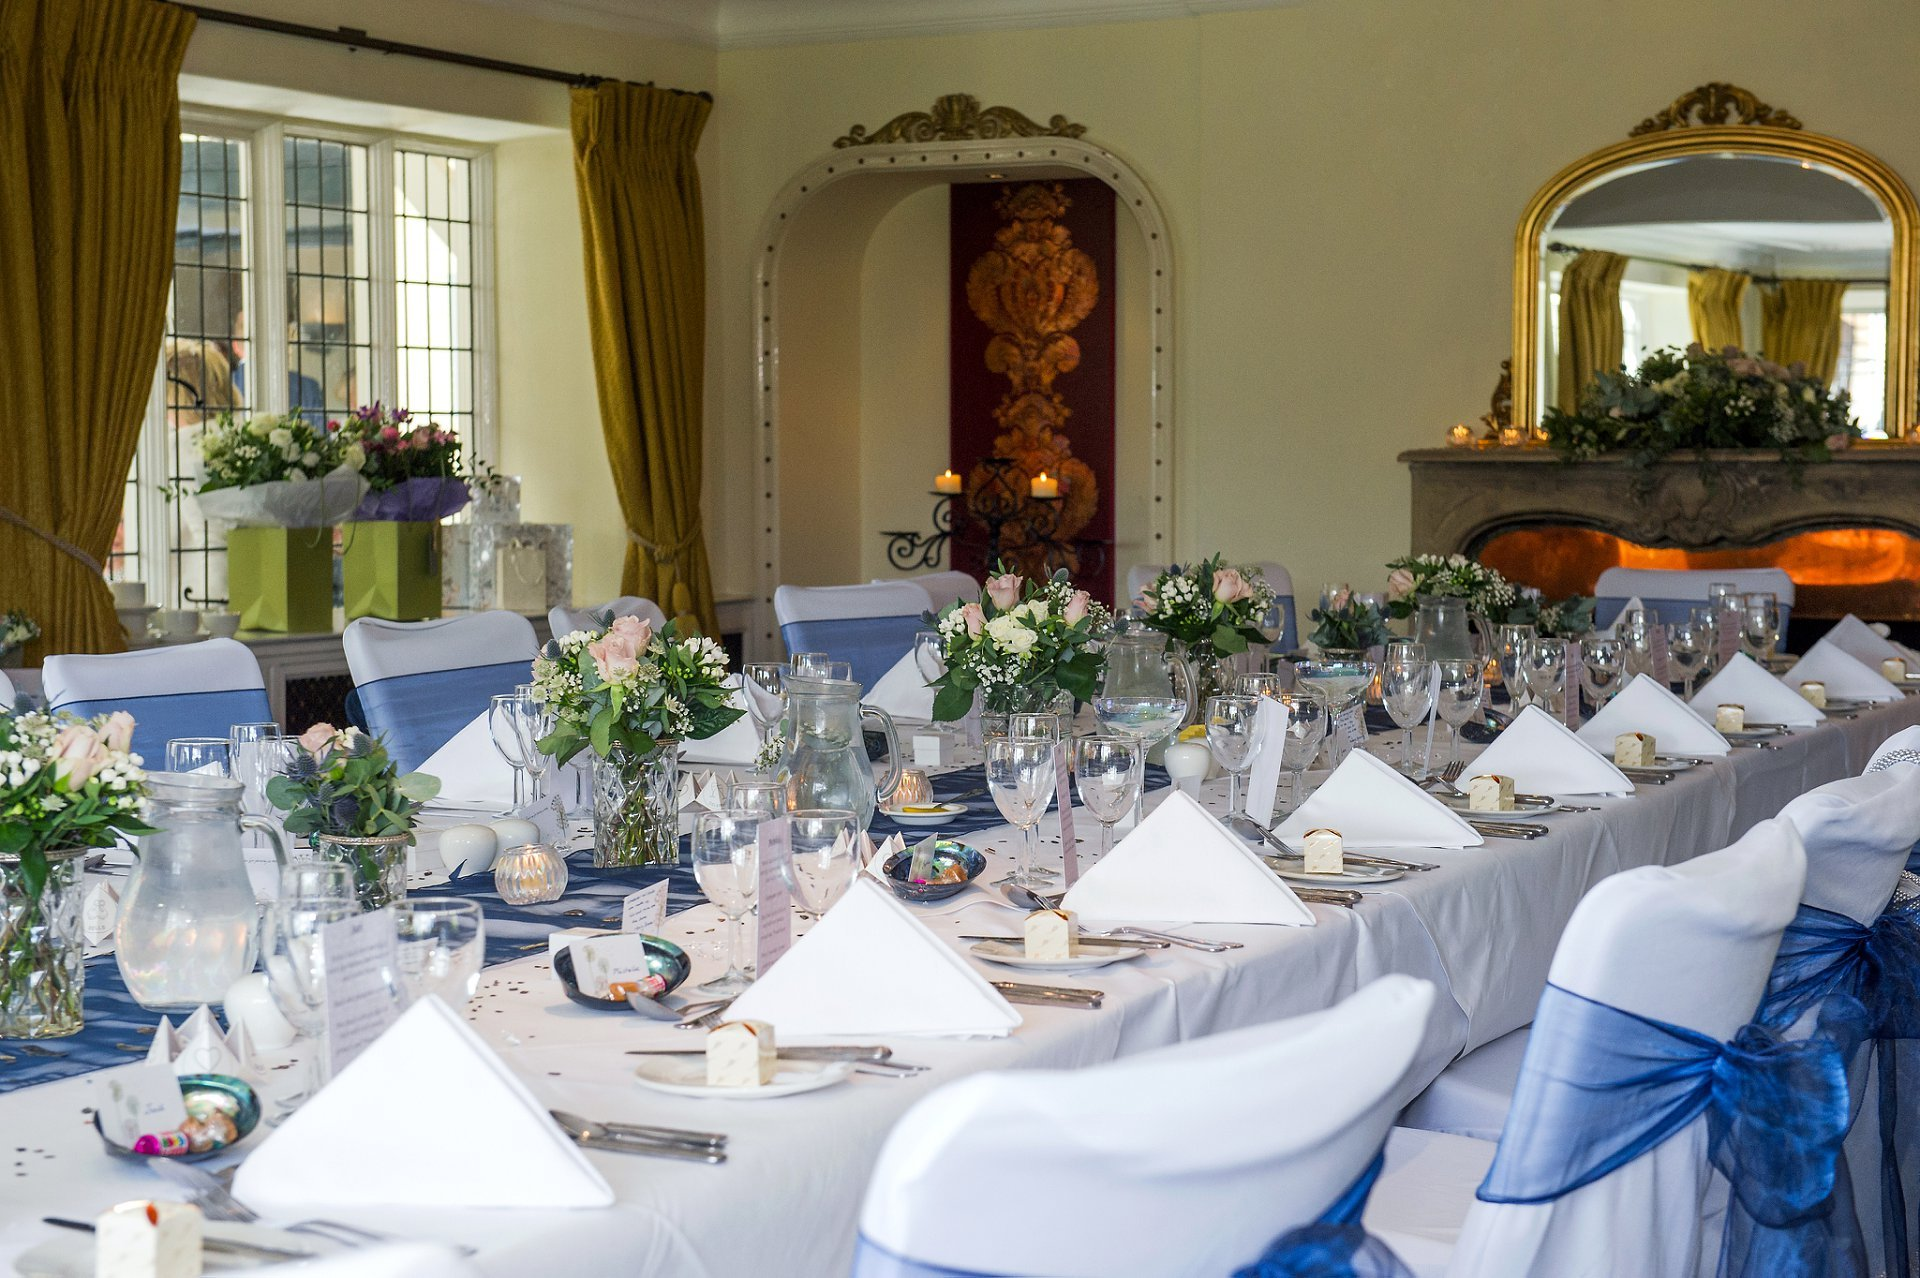 The Terrace Room at Ghyll Manor is an ideal wedding reception venue for around 20 guests and here is set for a wedding breakfast